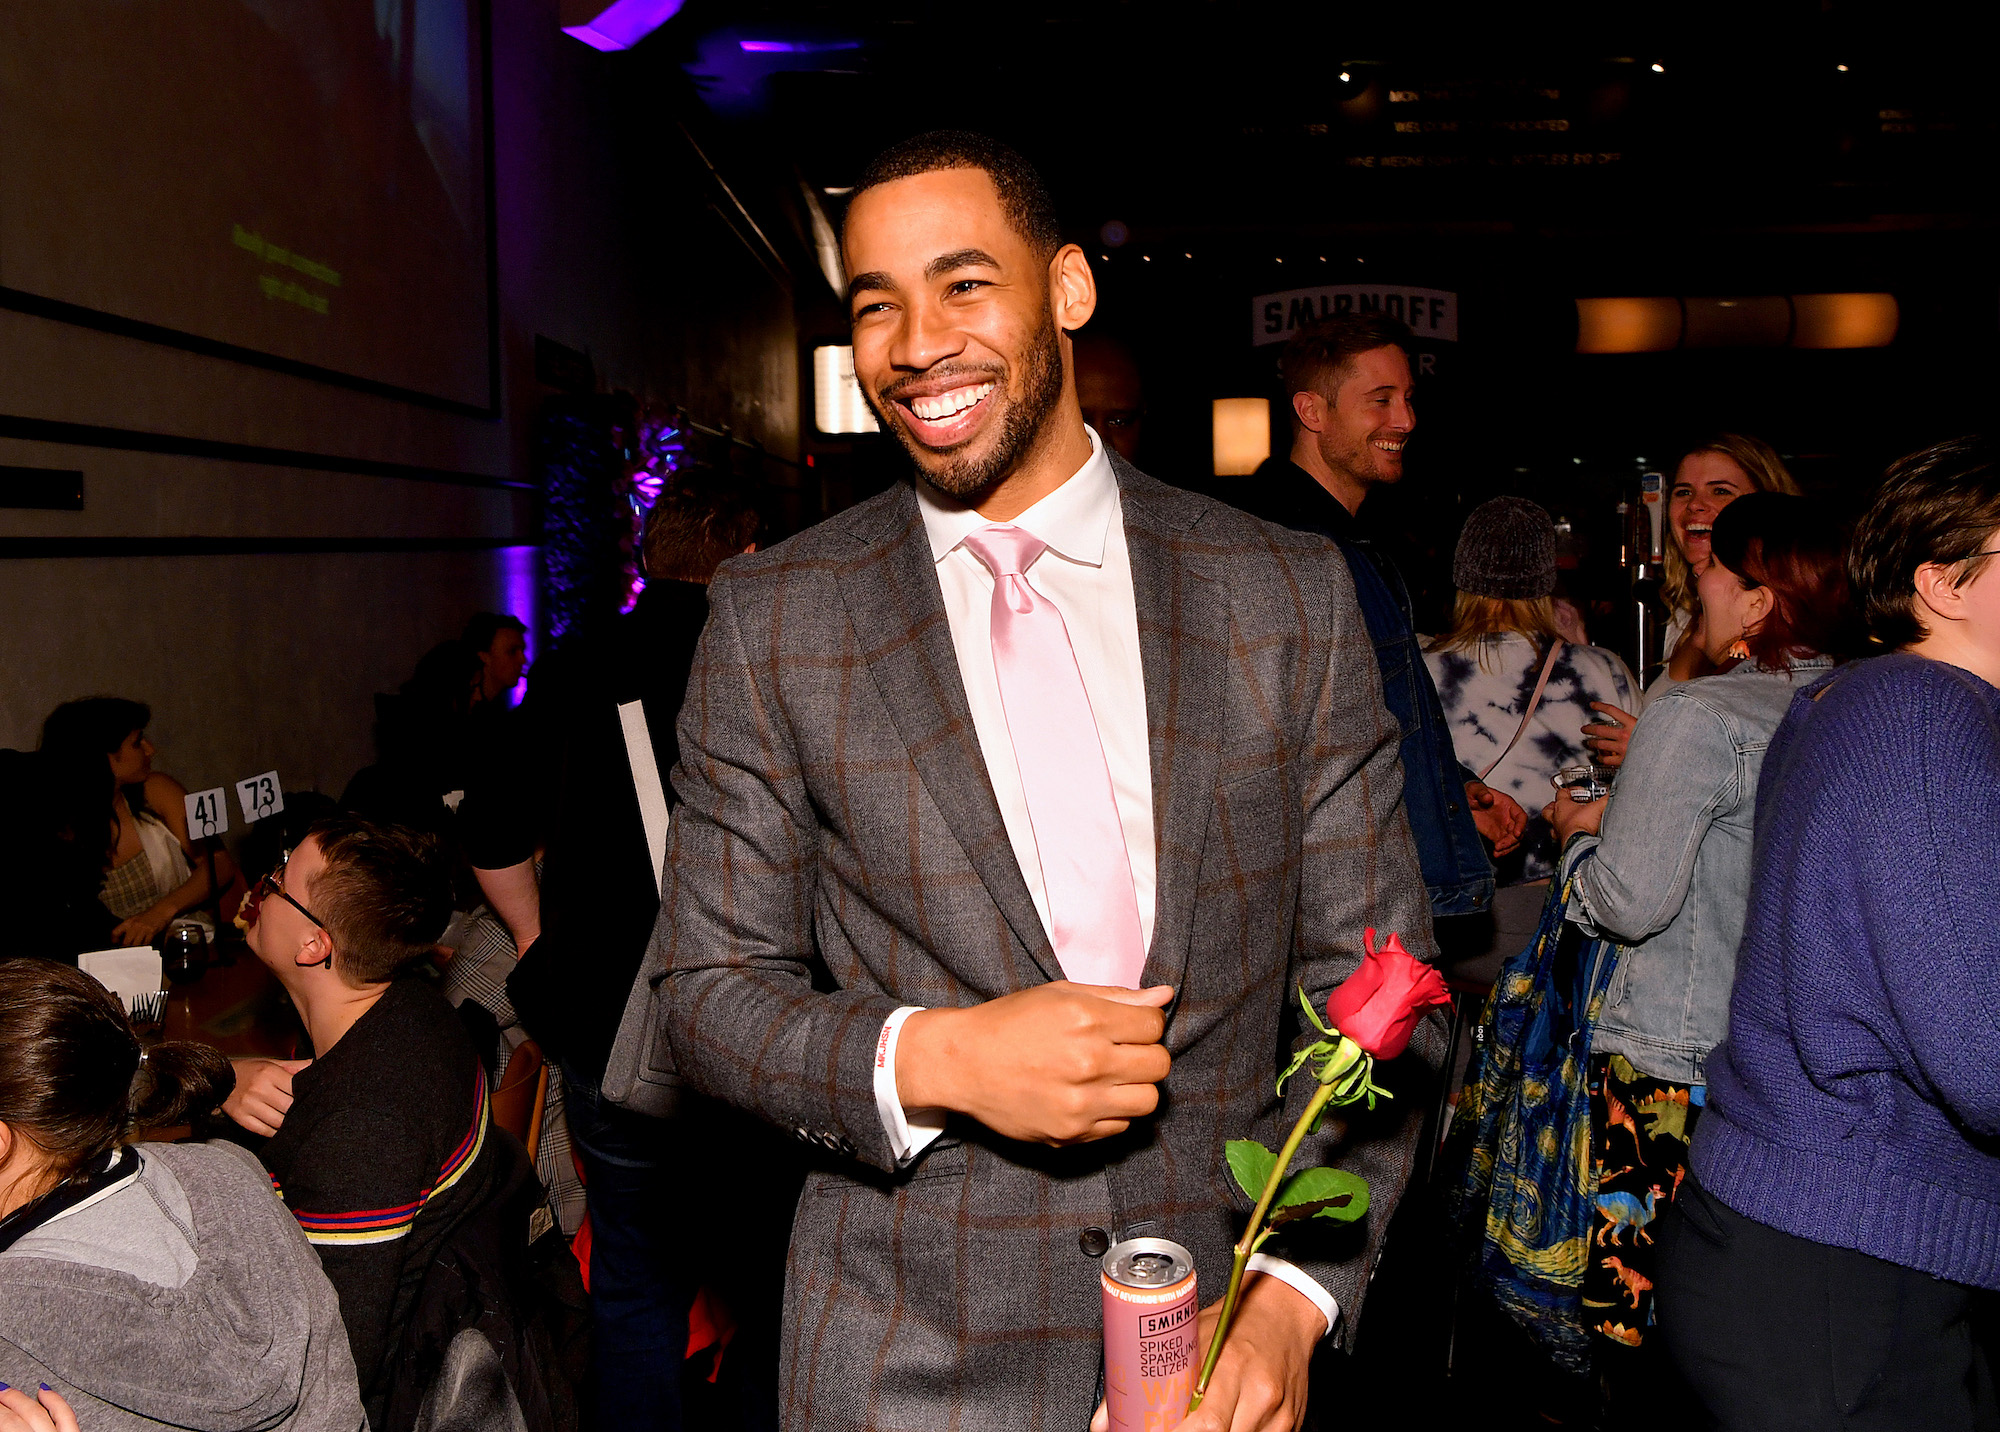 Mike Johnson joins Bachelor fans to watch Episode 2 while sipping on his favorite Smirnoff Seltzer White Peach Rosé on Jan. 13, 2020